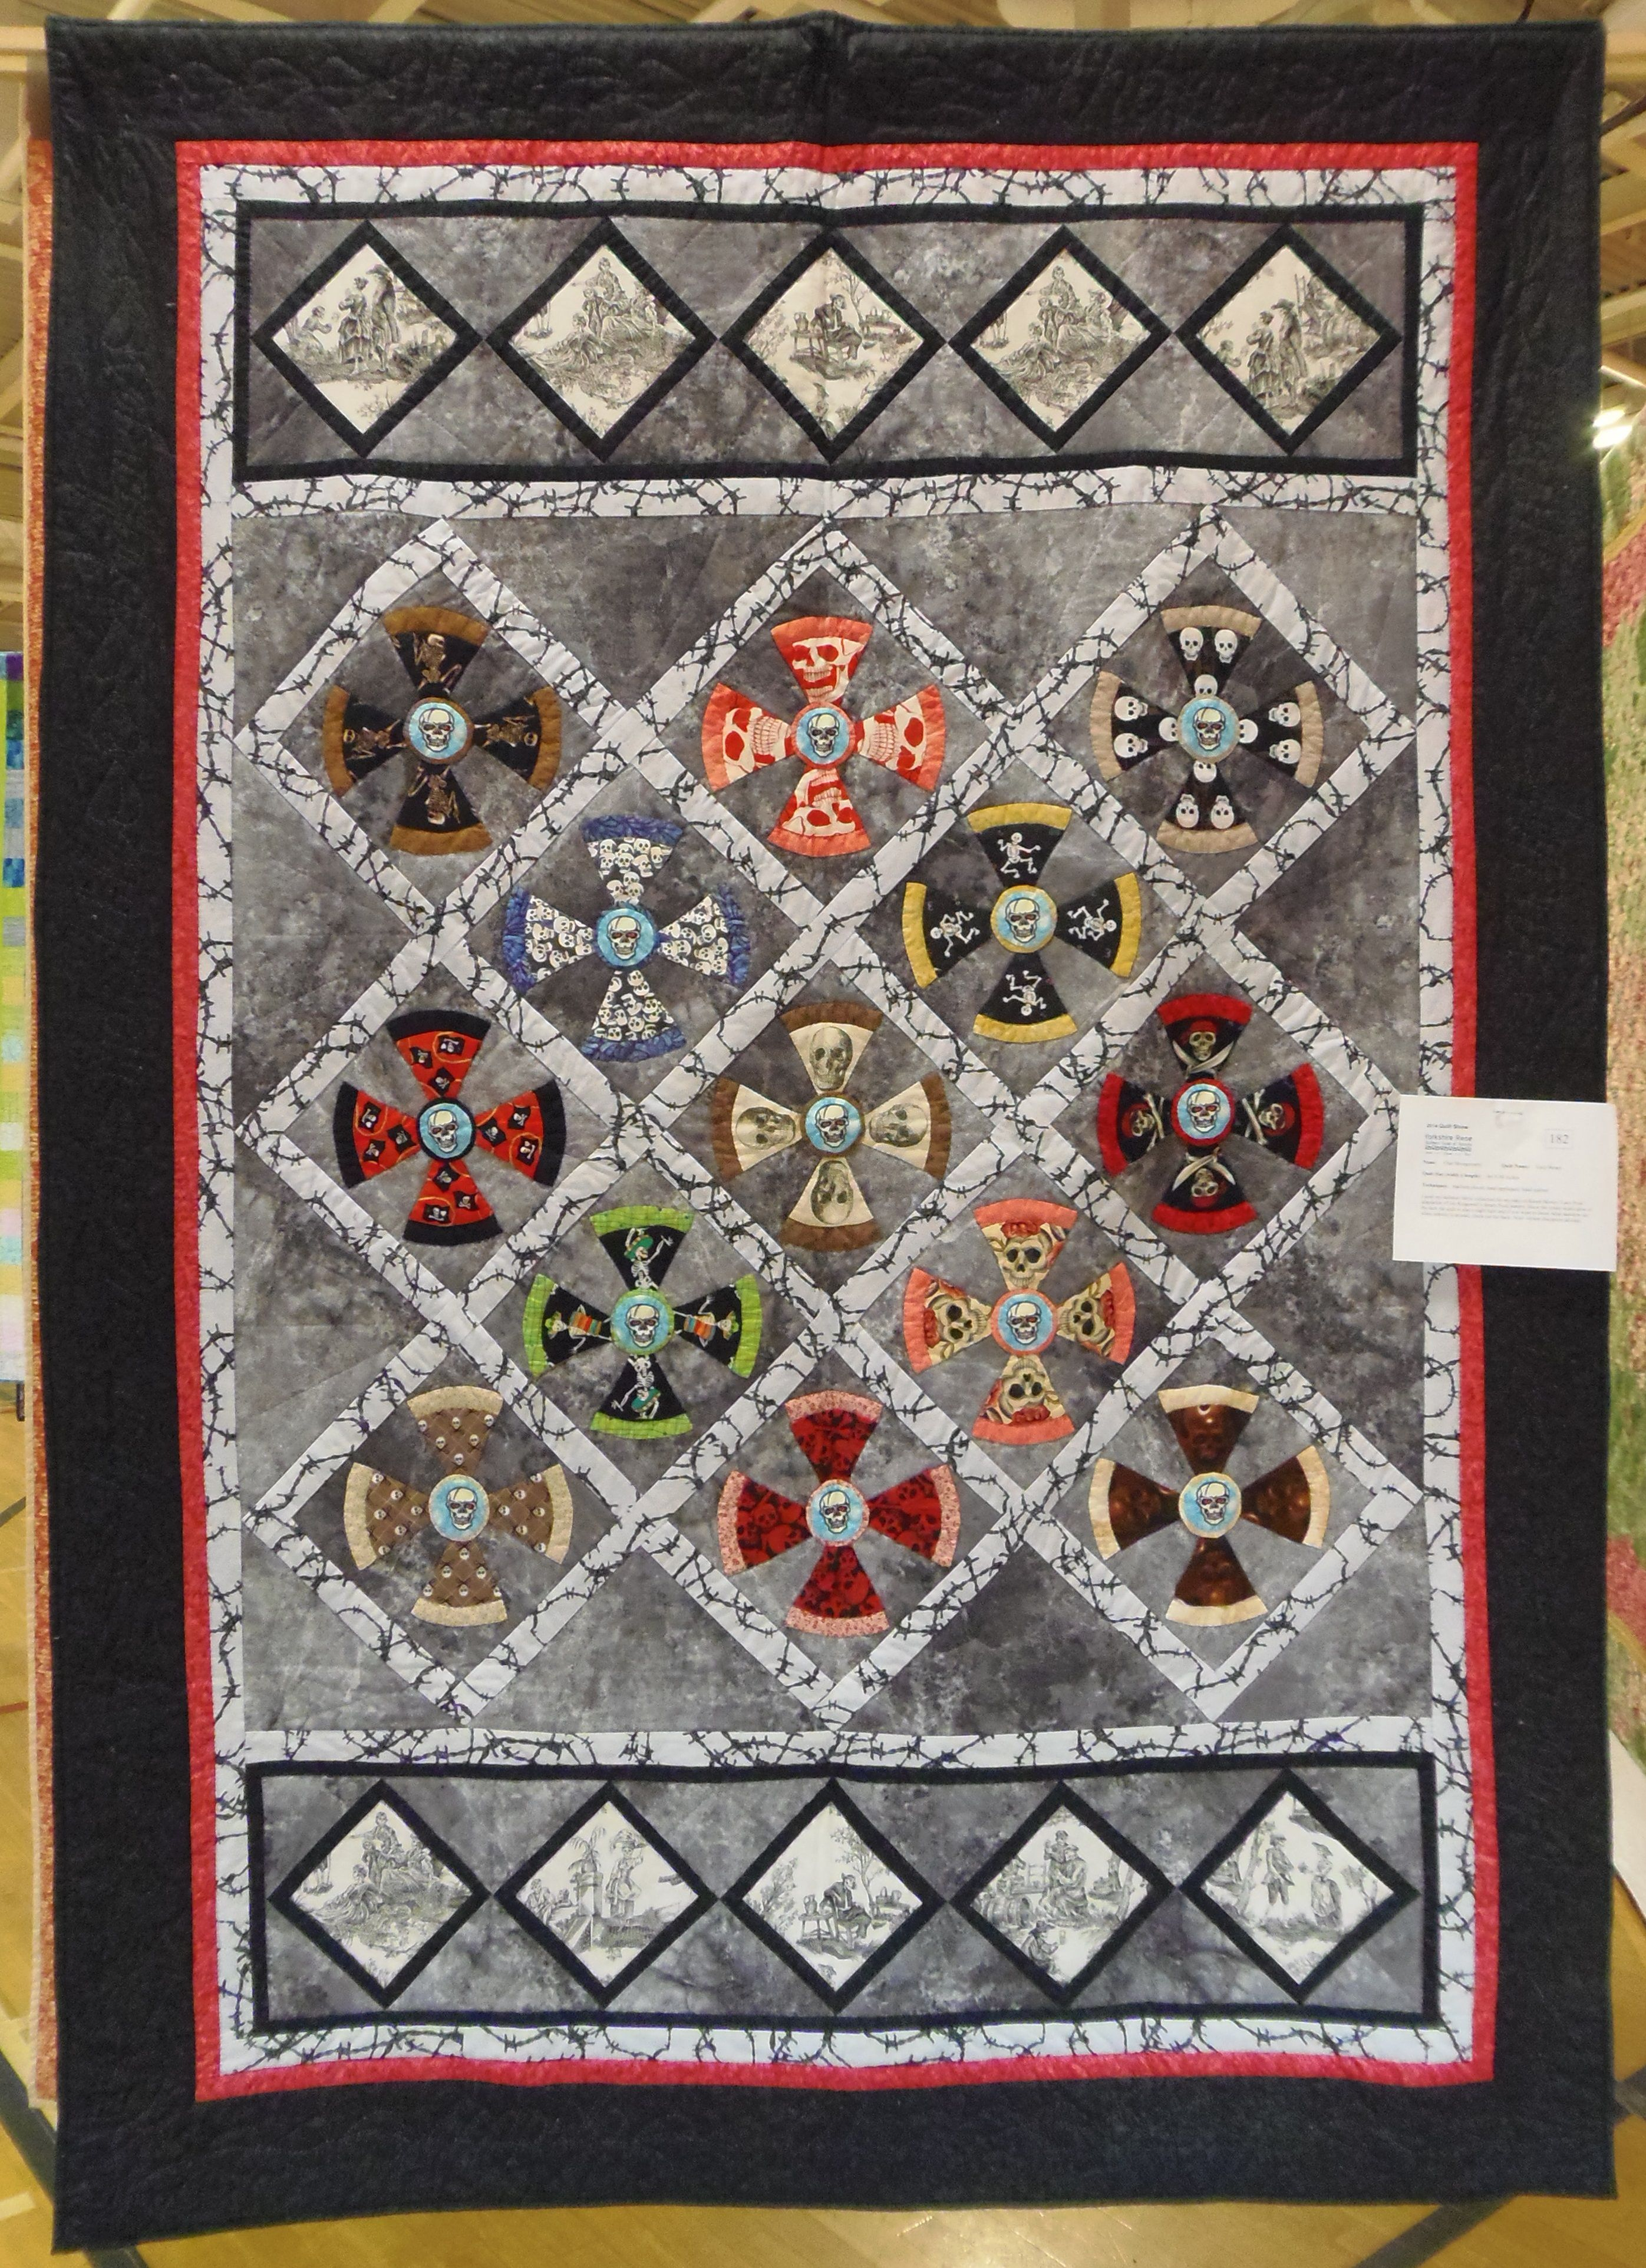 This quilt is called